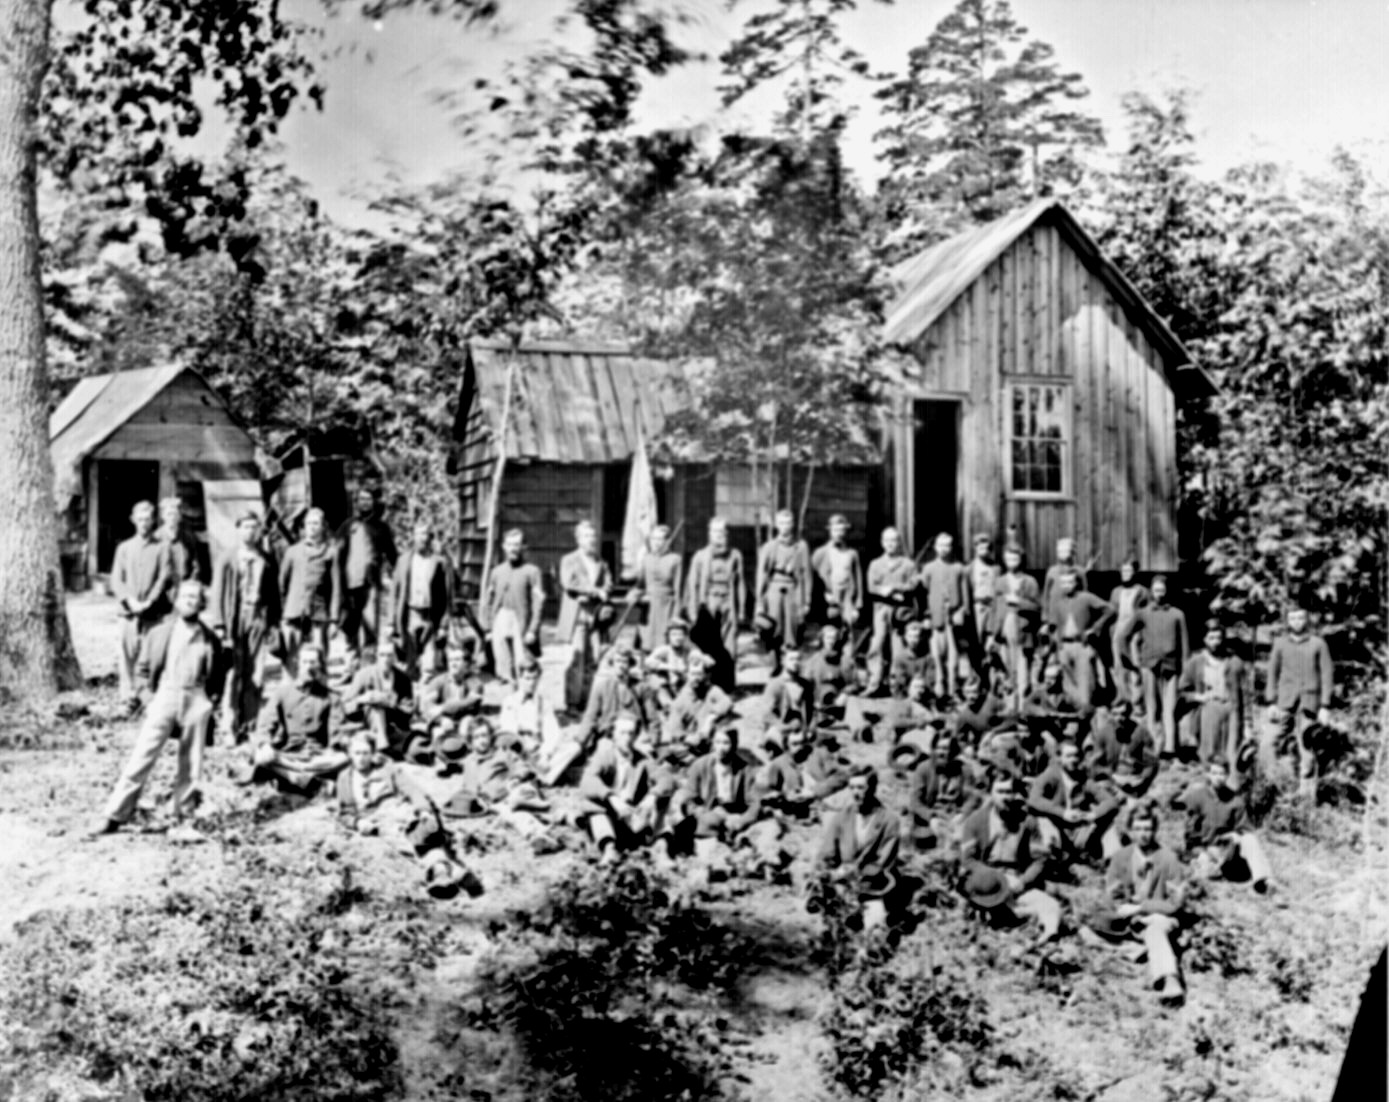 The 21st Michigan Infantry, a company of William Tecumseh Sherman's veterans.